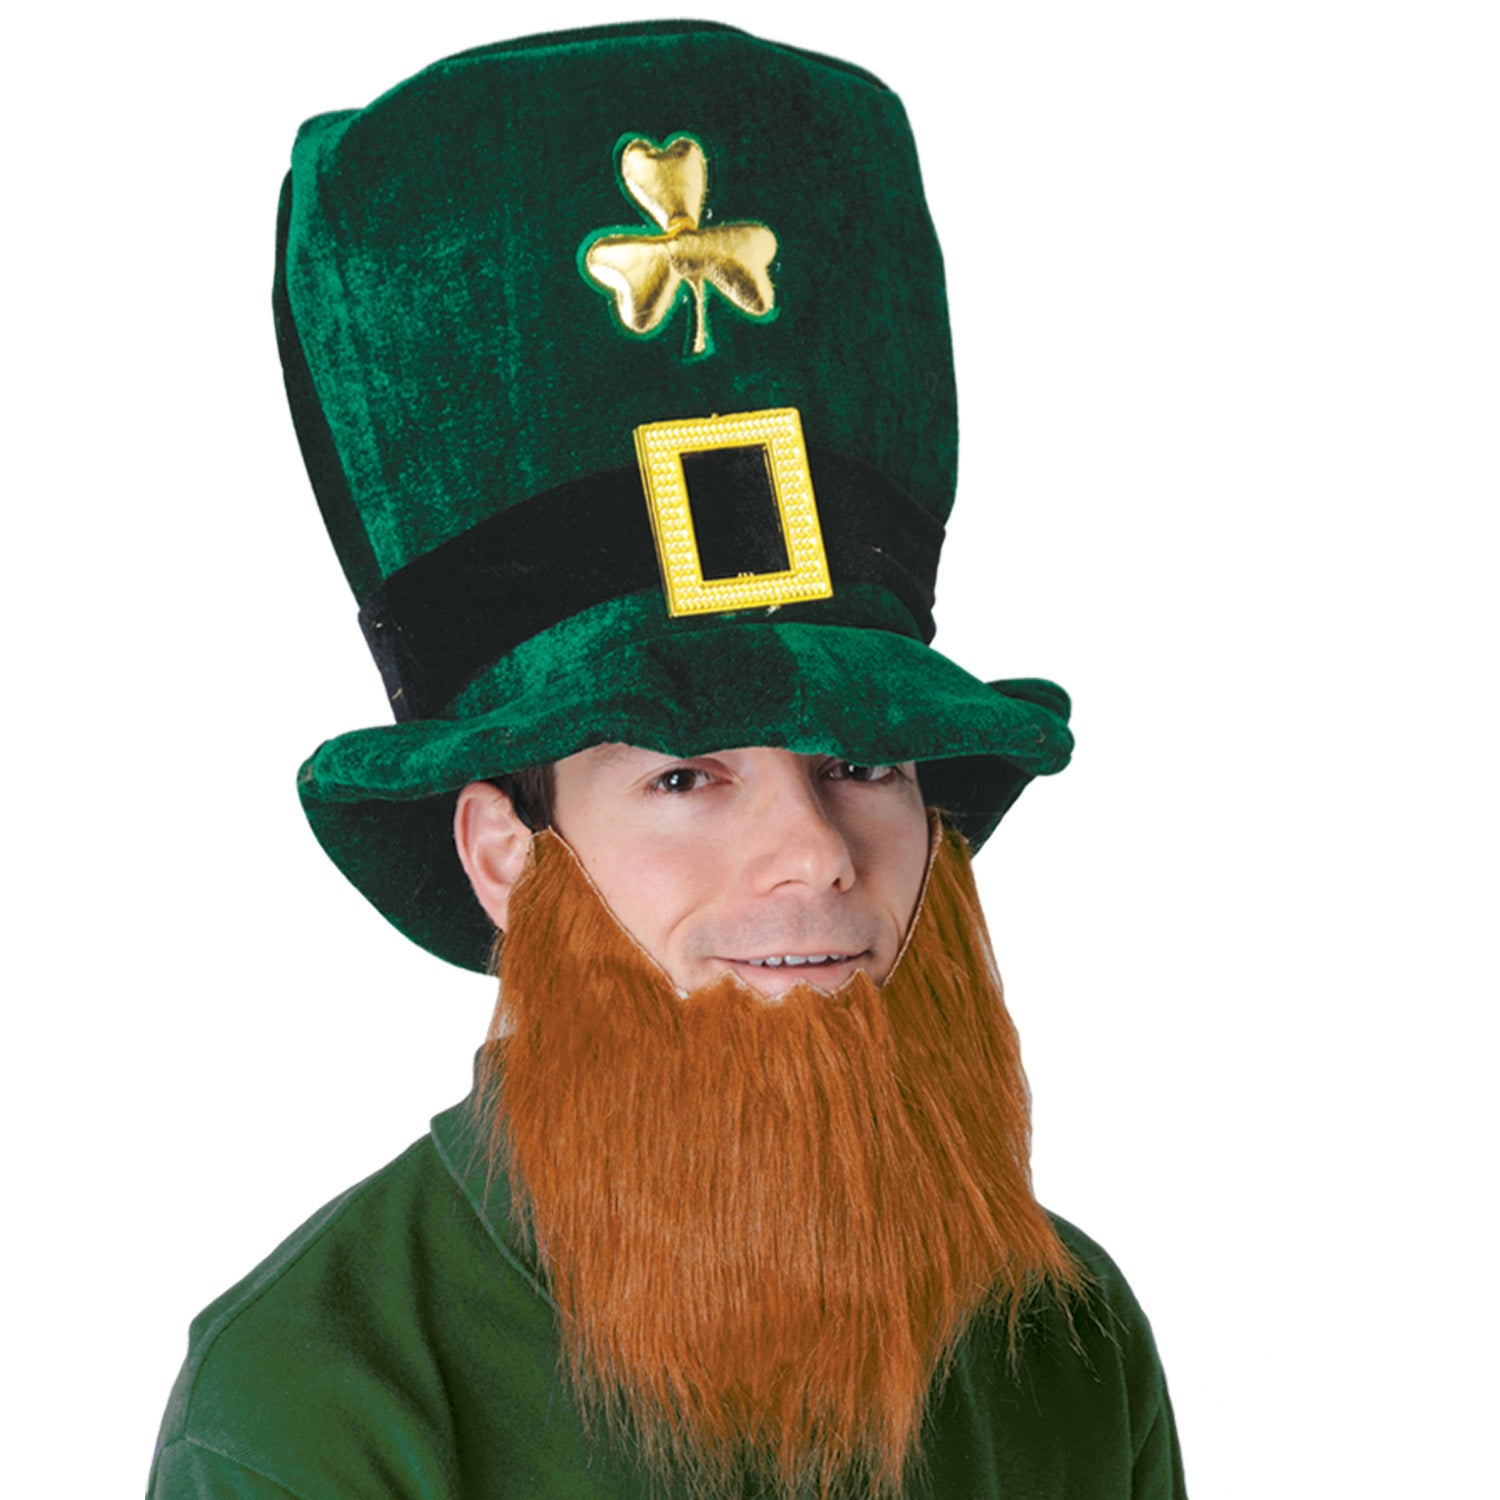 Plush Leprechaun Hat w/Beard by Beistle - St. Patricks Day Theme Decorations